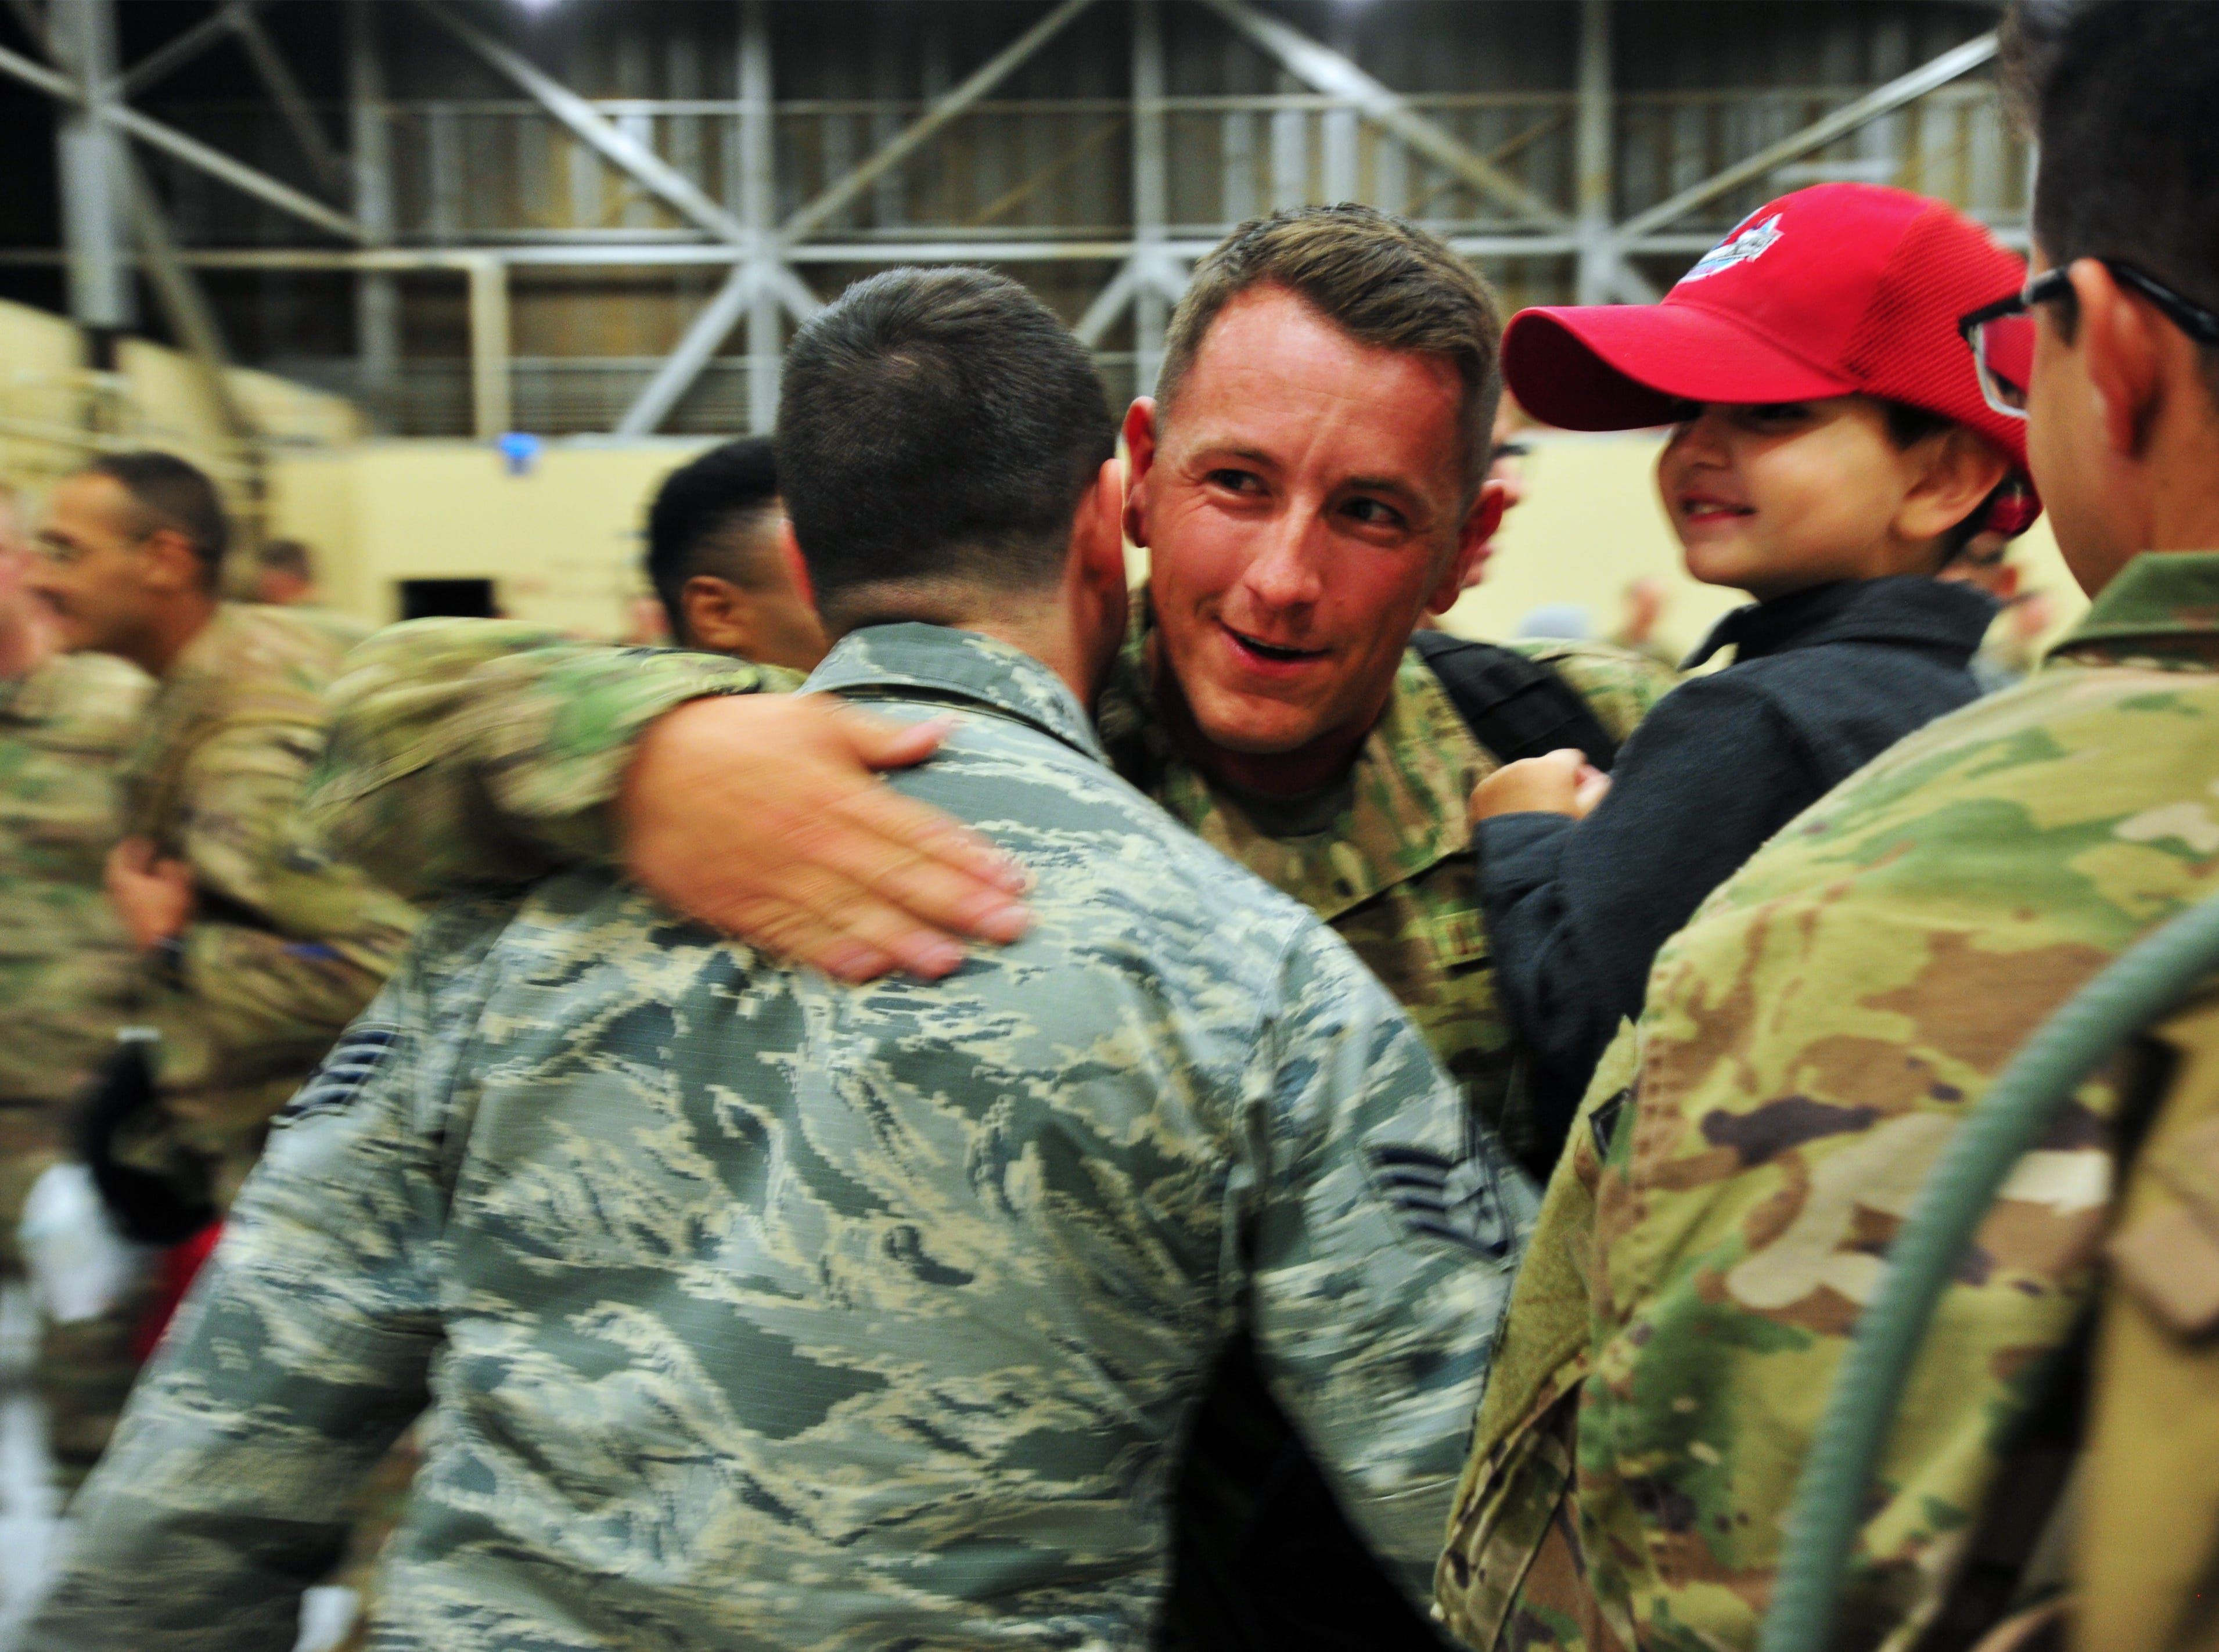 Staff Sergeant Verick McCorkell is welcomed home by his son Vaughn, age 4, and colleagues on Monday afternoon at Malmstrom Air Force Base.  McCorkell was one of 100 members of the 819th Red Horse Squadron who returned home, Monday, after a seven month deployment to the African country of Niger.